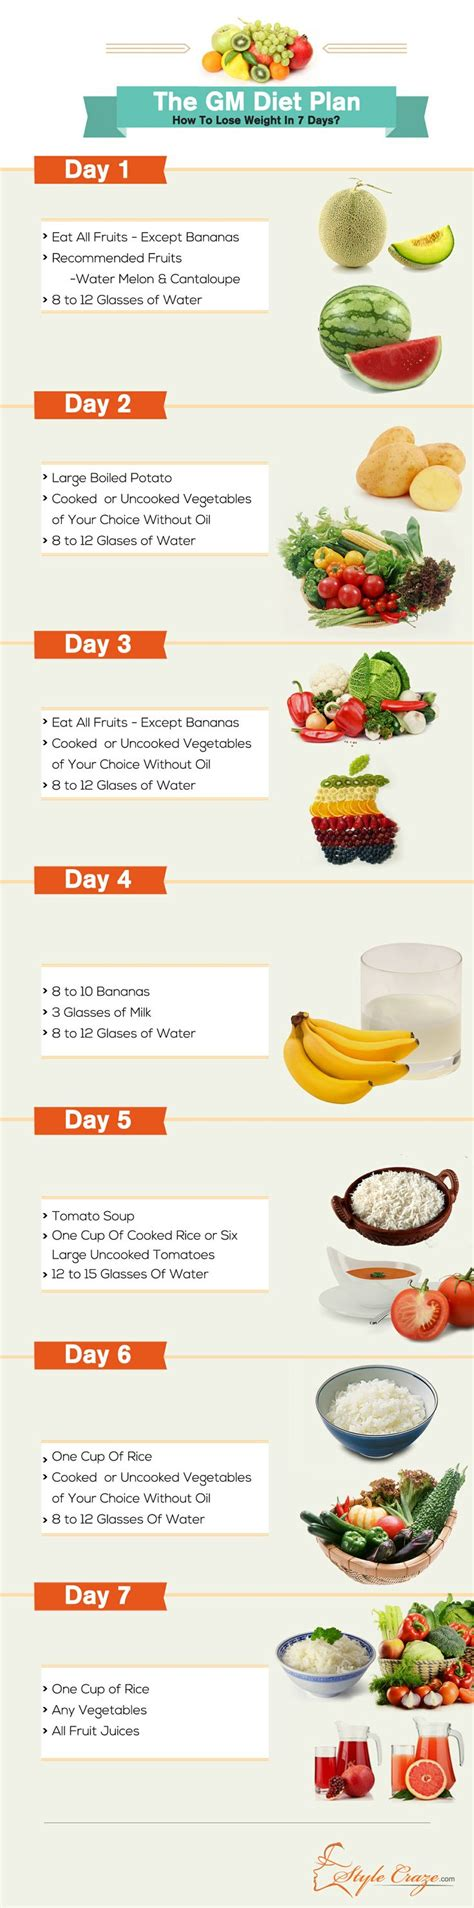 Can I Detox From In A Week by Gm Diet Plan